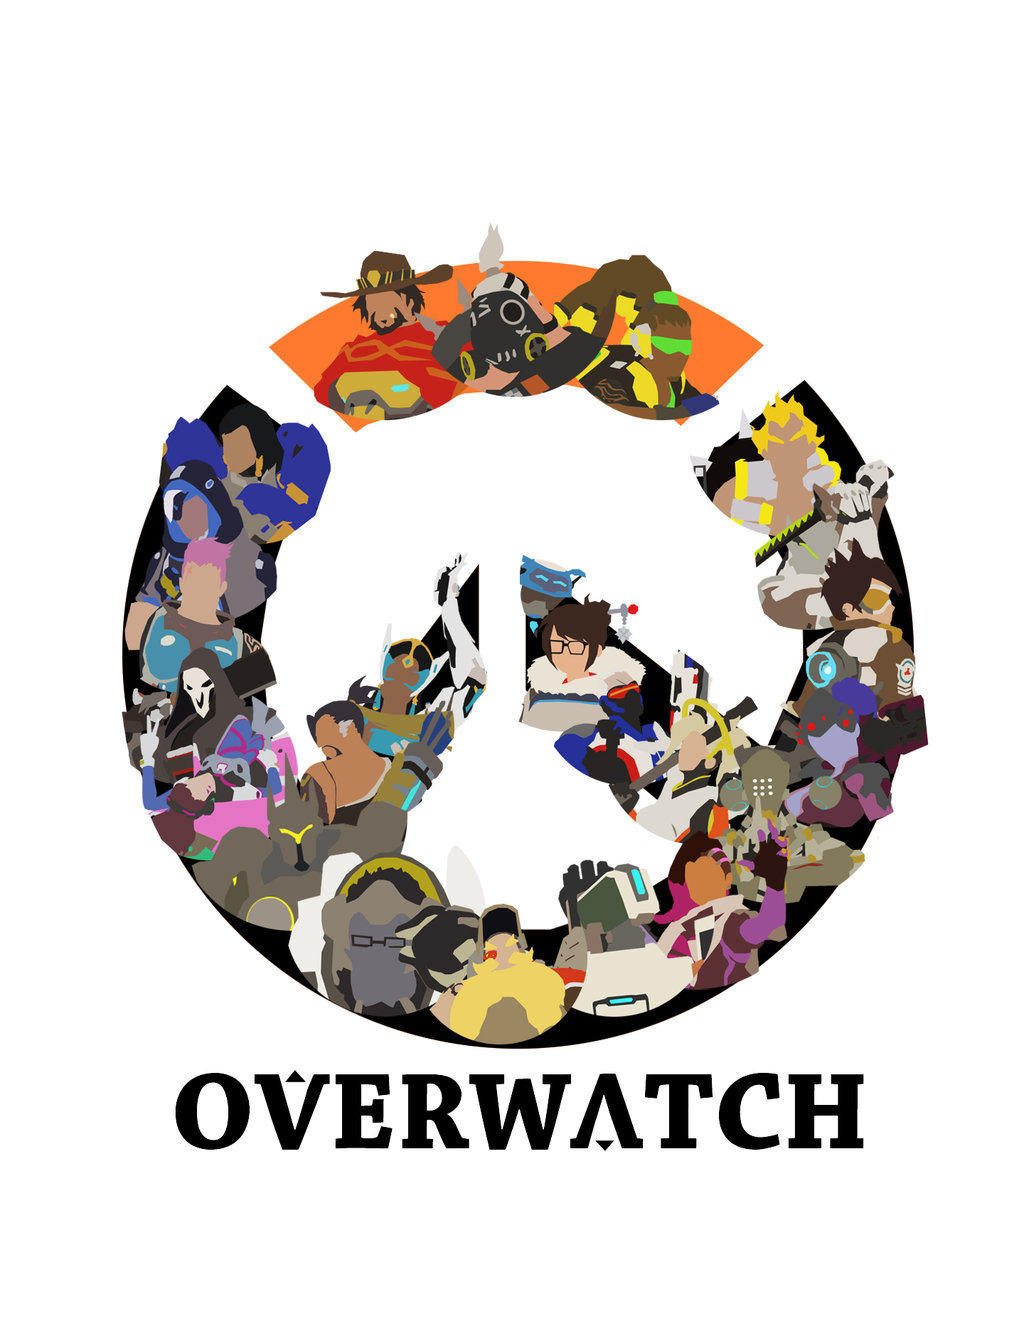 Overwatch Minimalist Logo by DoodledorkArt on DeviantArt.